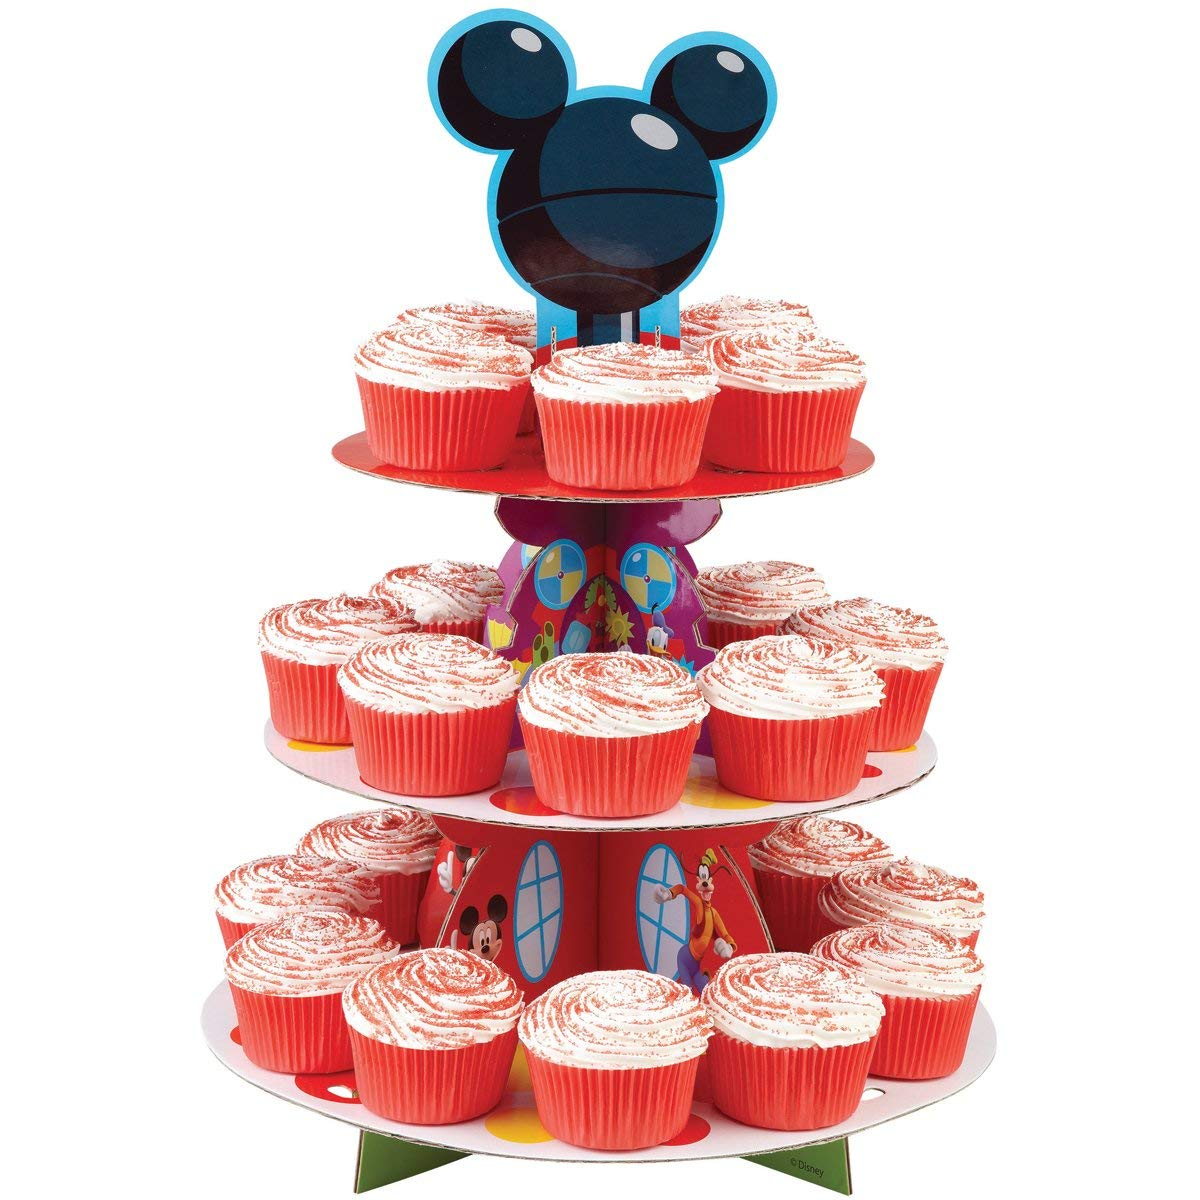 Décoration De Cupcake Cute Wilton Wilton Disney Treat Stands Mickey Disny Party Stand Cupcake Stand Decoration Cupcake Baking Confectionery Tool Supplies Paper оf